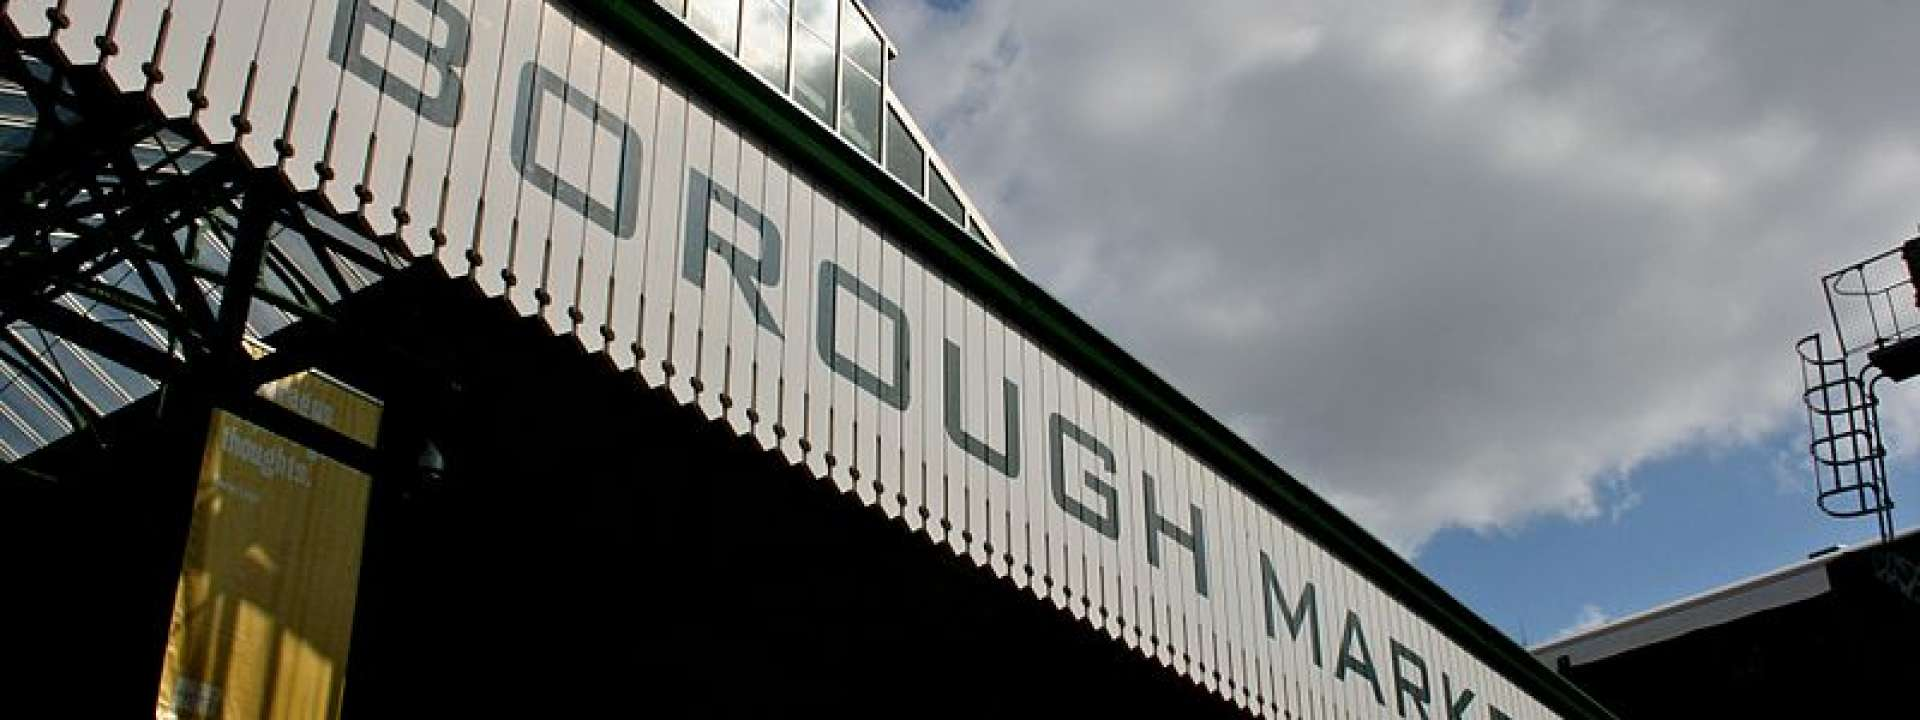 800px-Borough_Market_sign